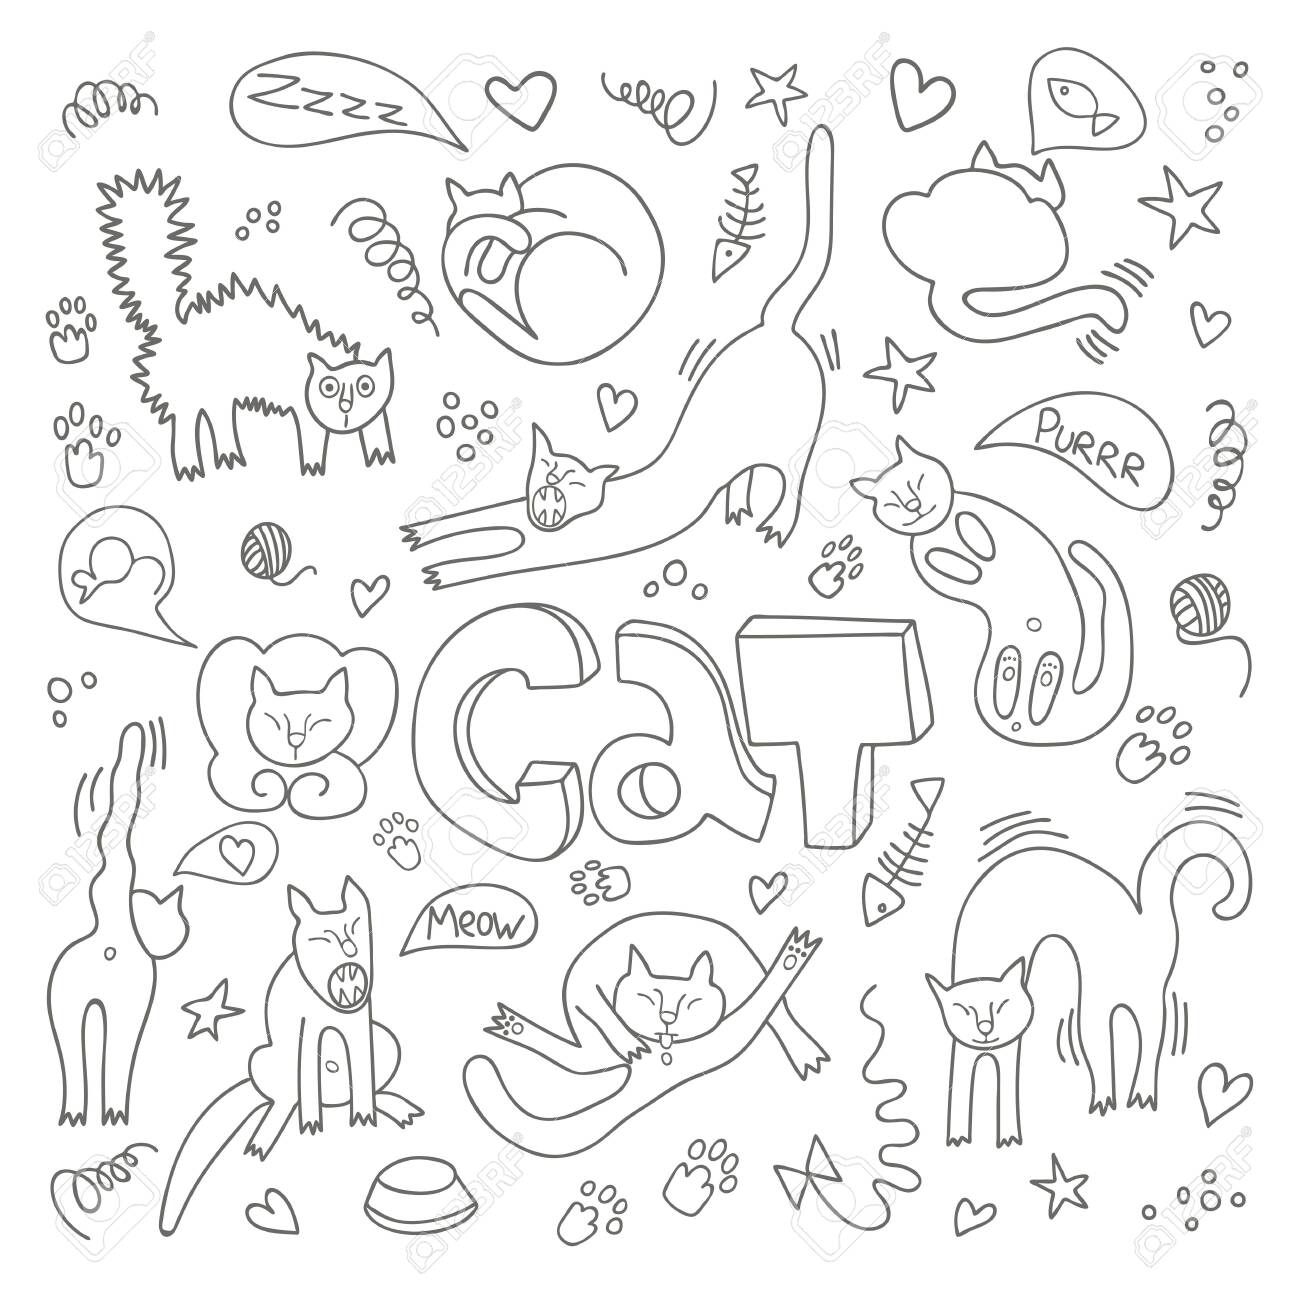 Hand drawn vector illustrations of cats characters. Flat style. Doodle with lettering Cat - 131857414